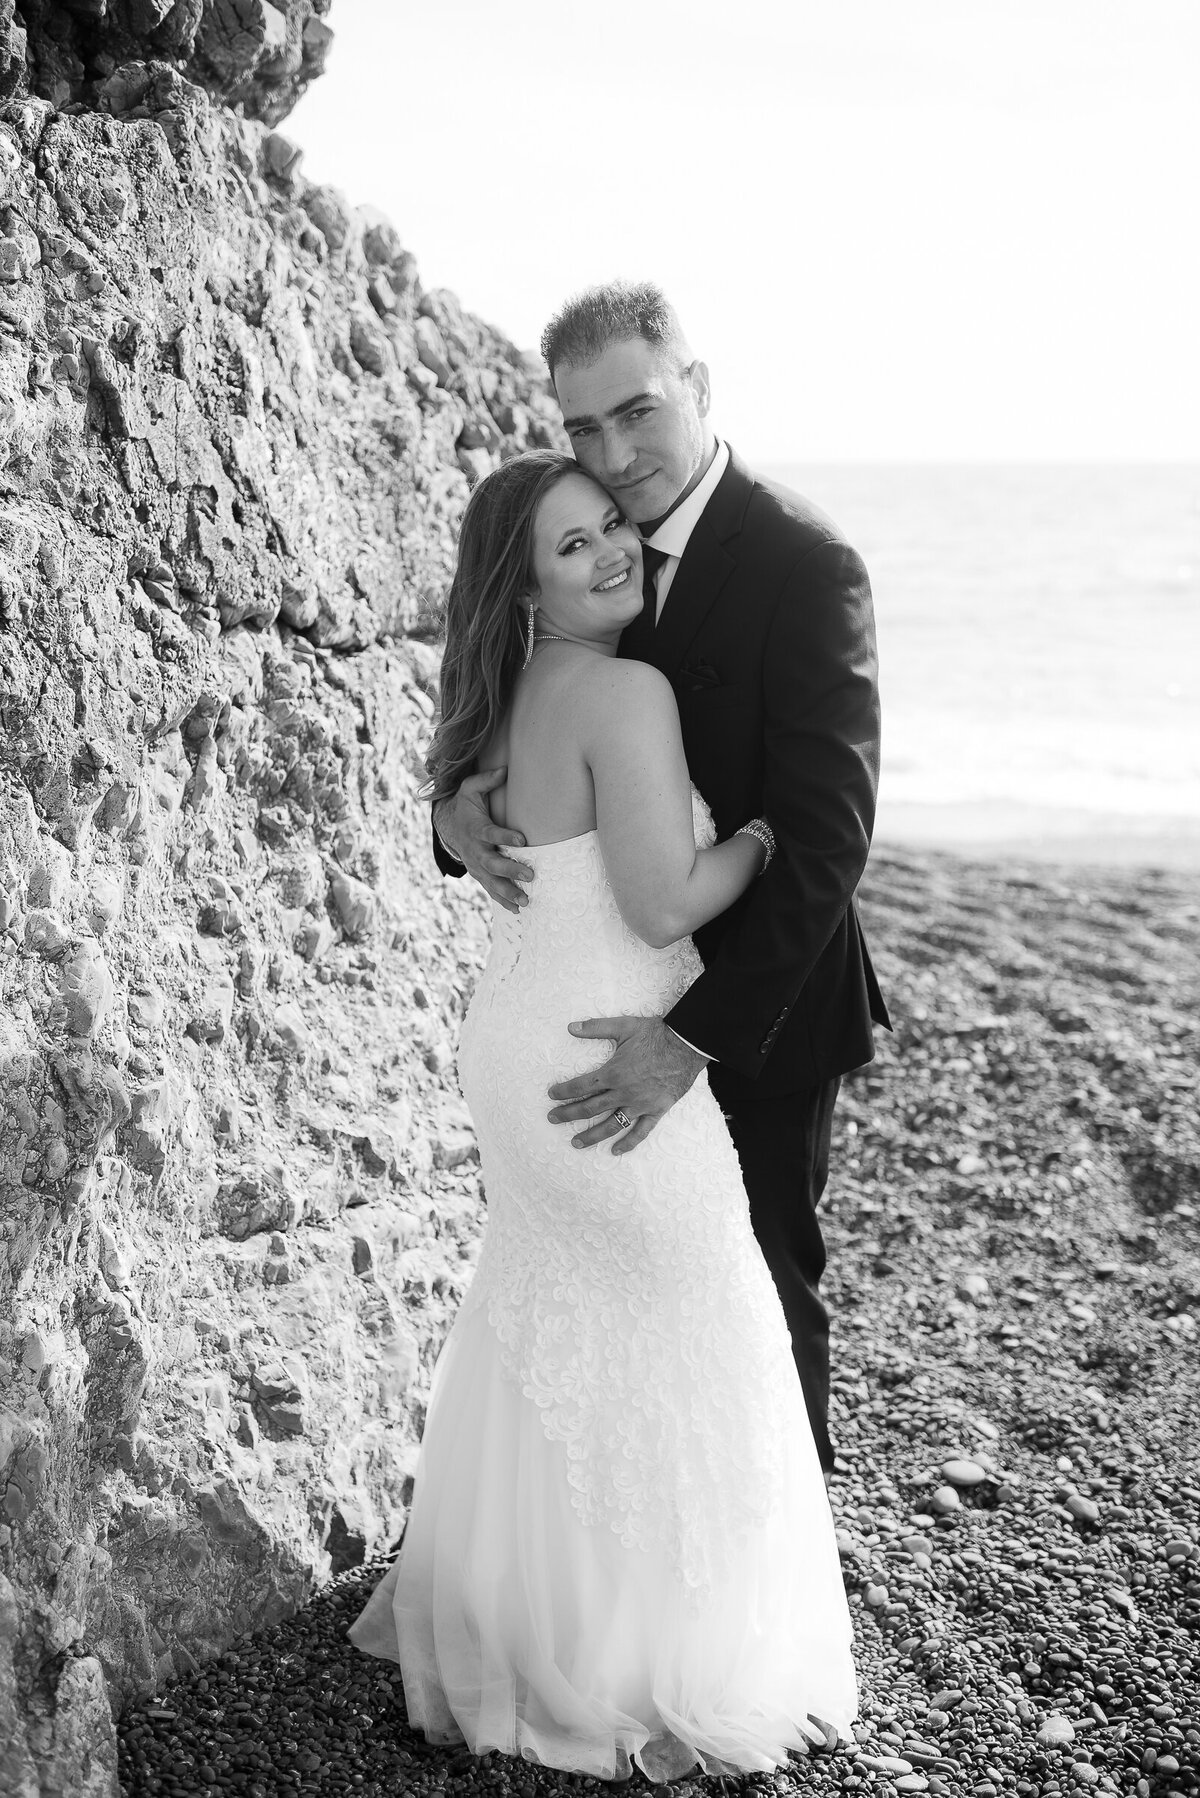 Shelter-Cove-Black-Sannds-Beach-photographer-adventure-elopement-intimate-destination-wedding-nor-cal-beach-elopement-12